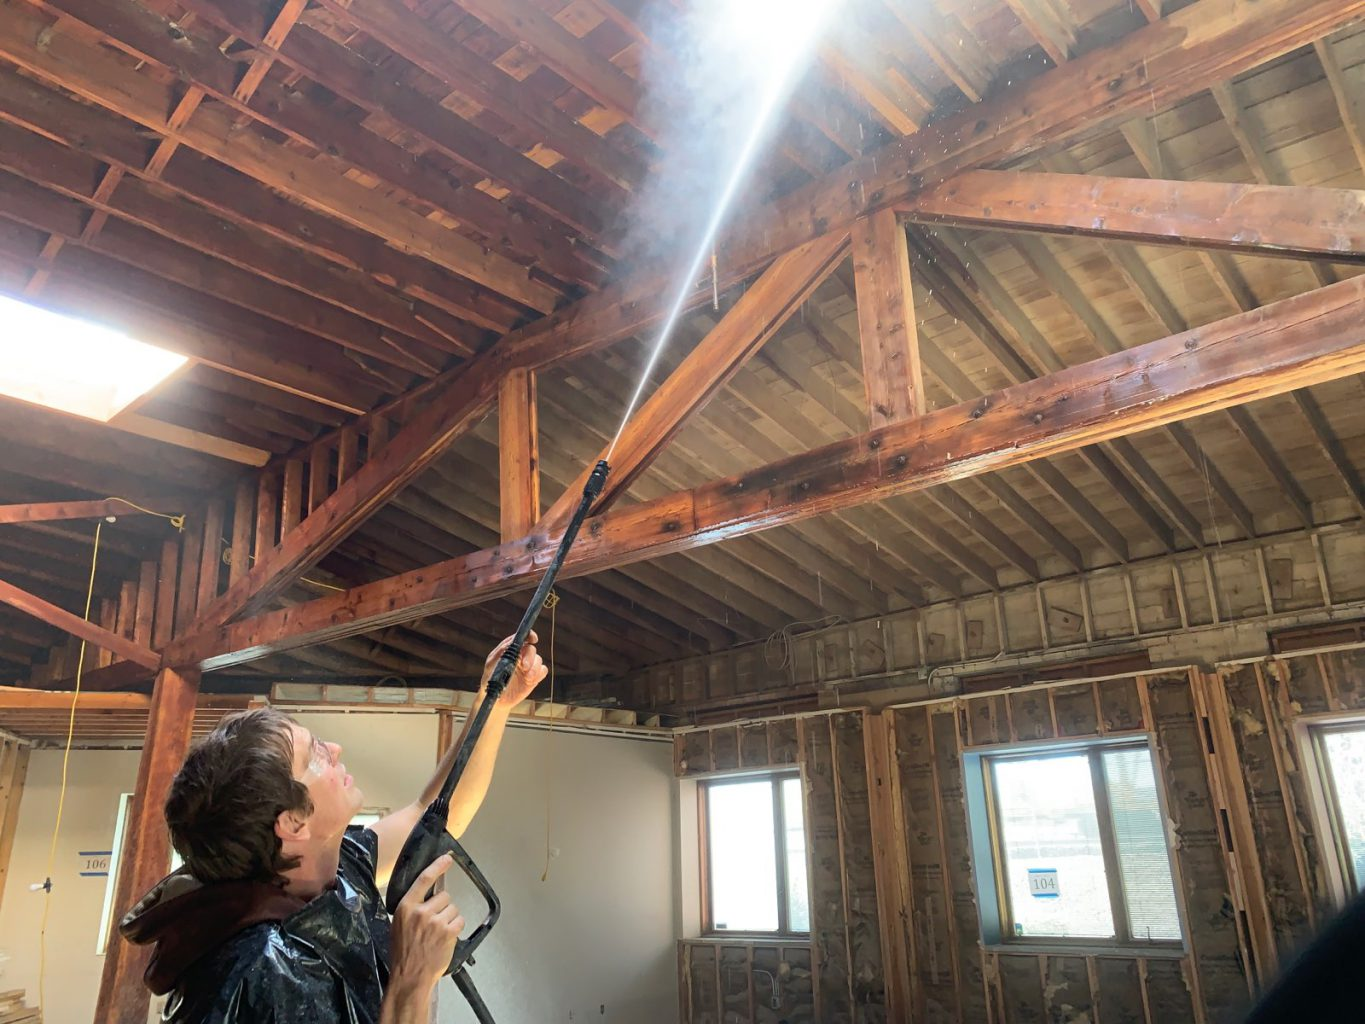 Worker blasts ceiling with water to remove old paint from trusses and rafters